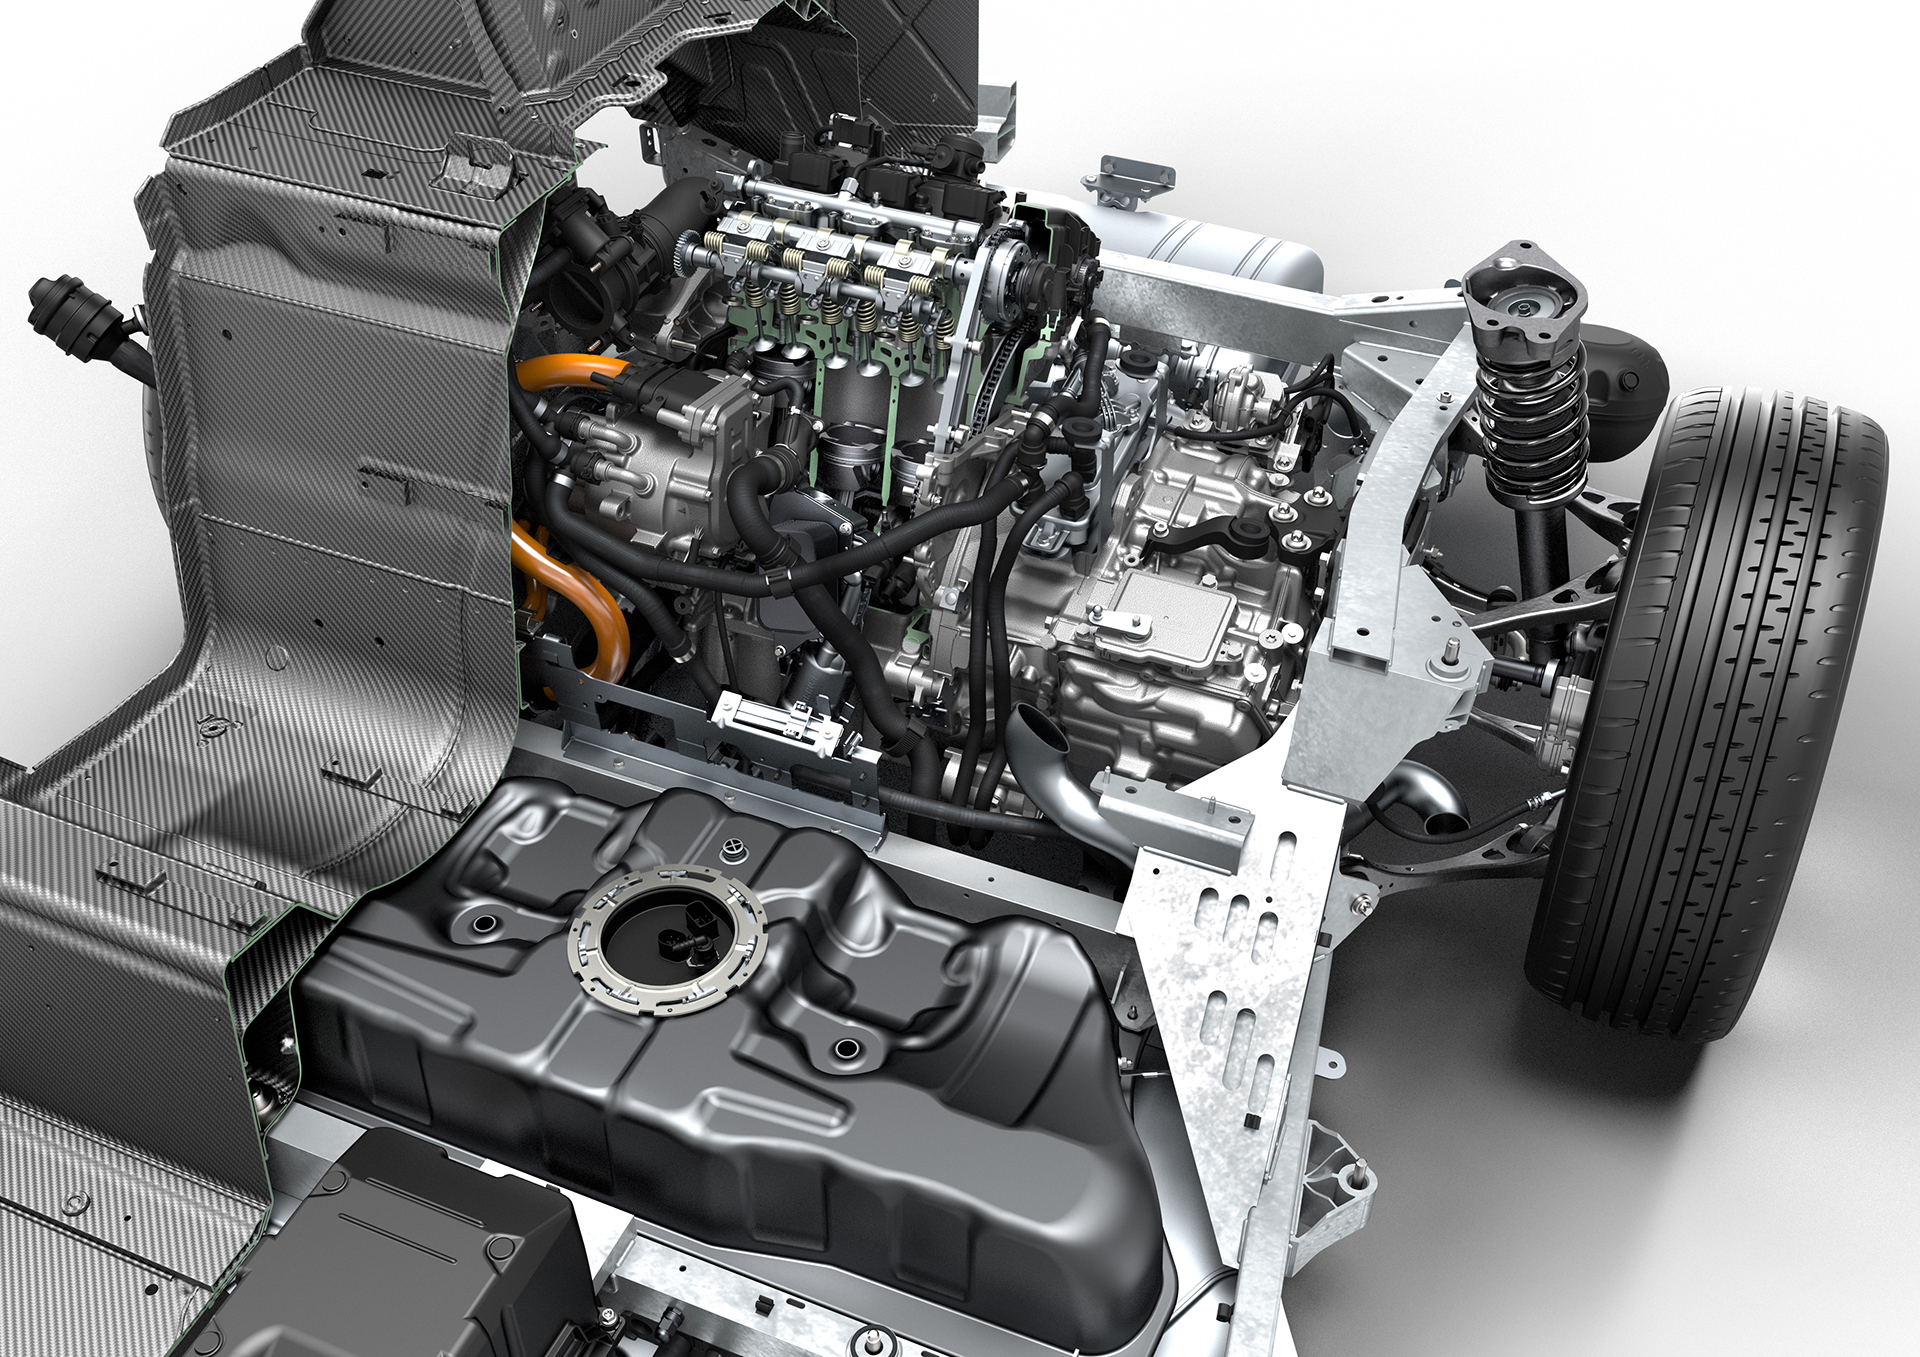 BMW i8 - inside powertrain engine